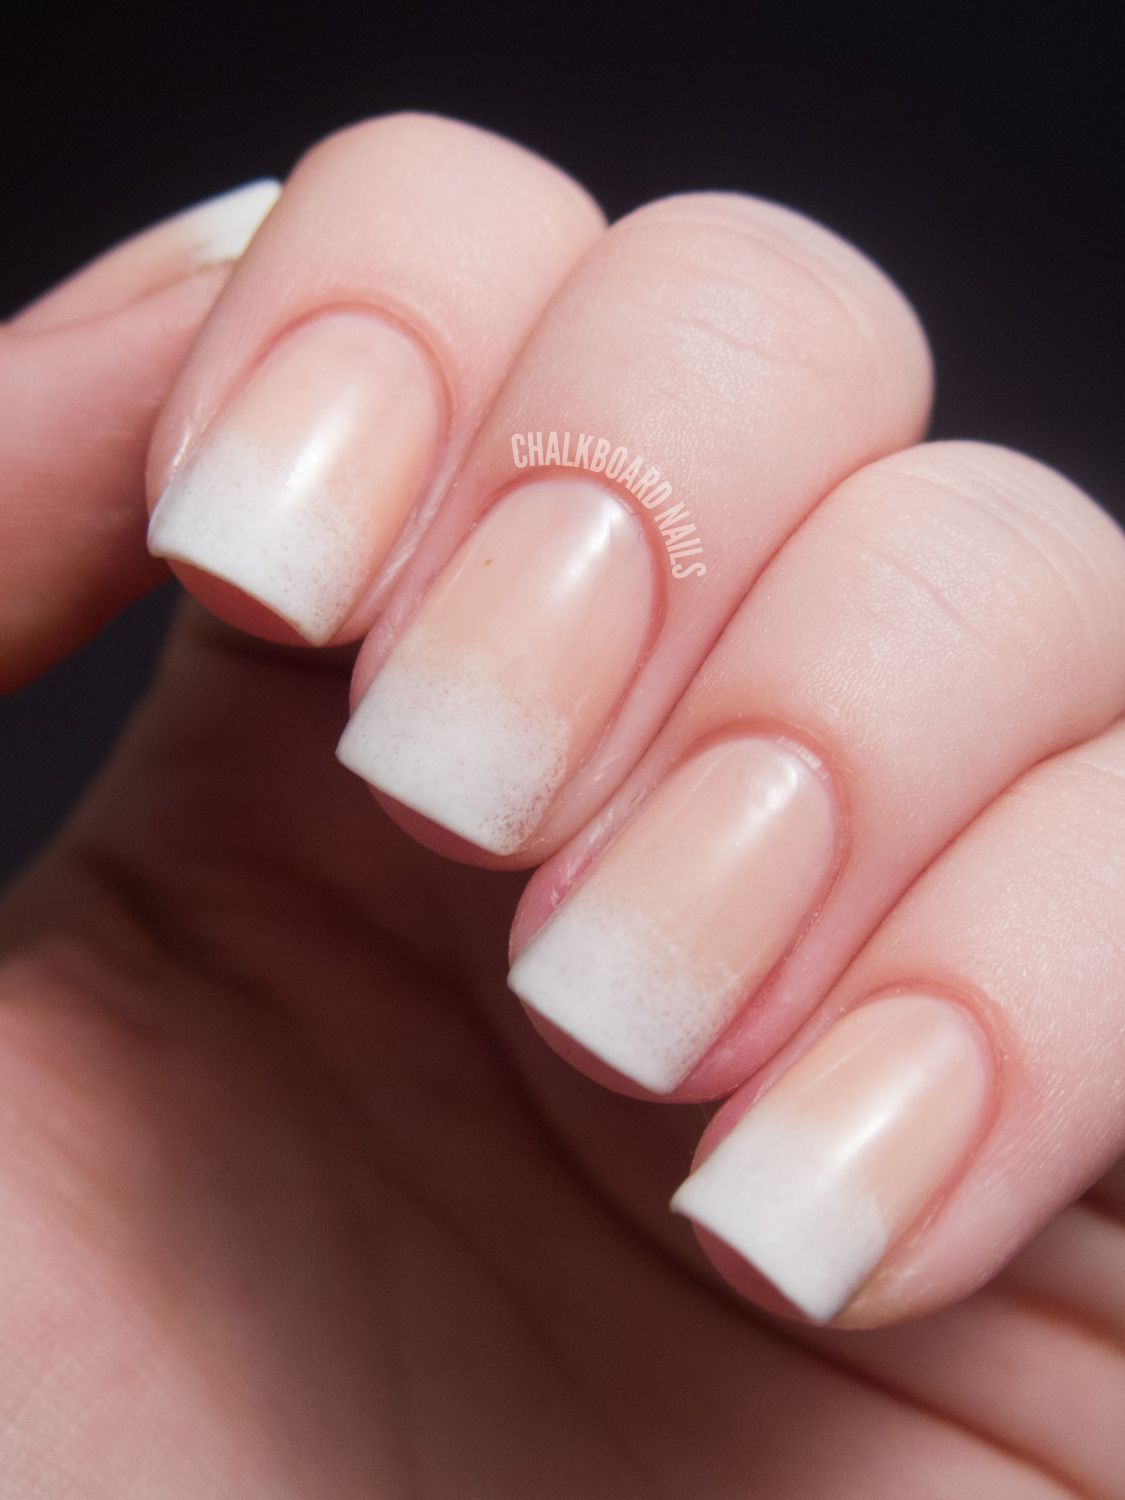 Ombre french #nails | Graphic design & logos | Pinterest | Ombre ...